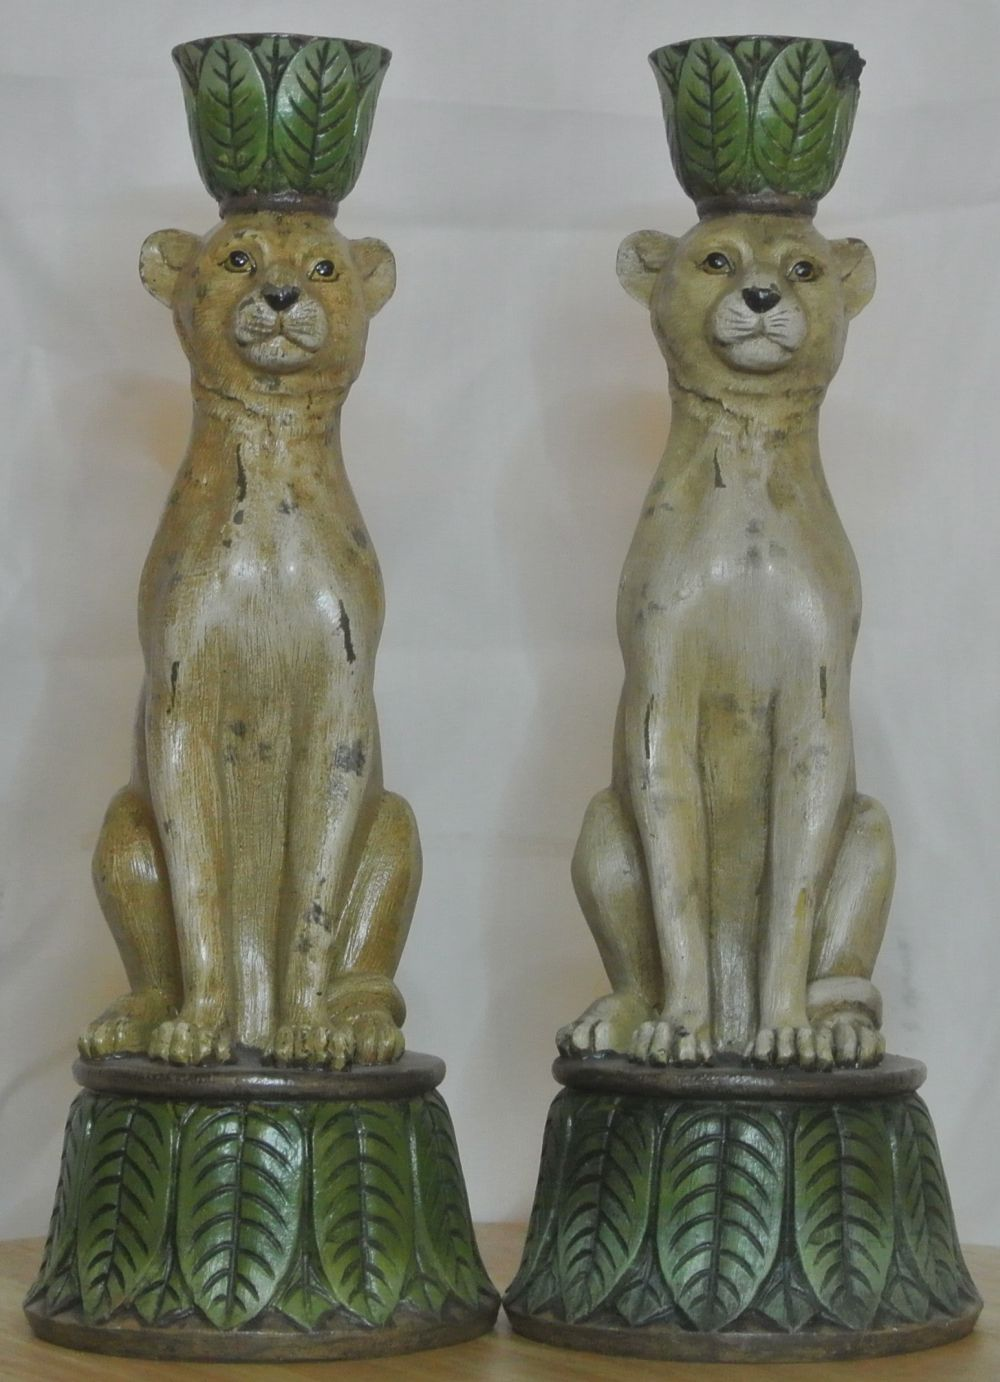 An unusual pair of antique style cheetah candlesticks